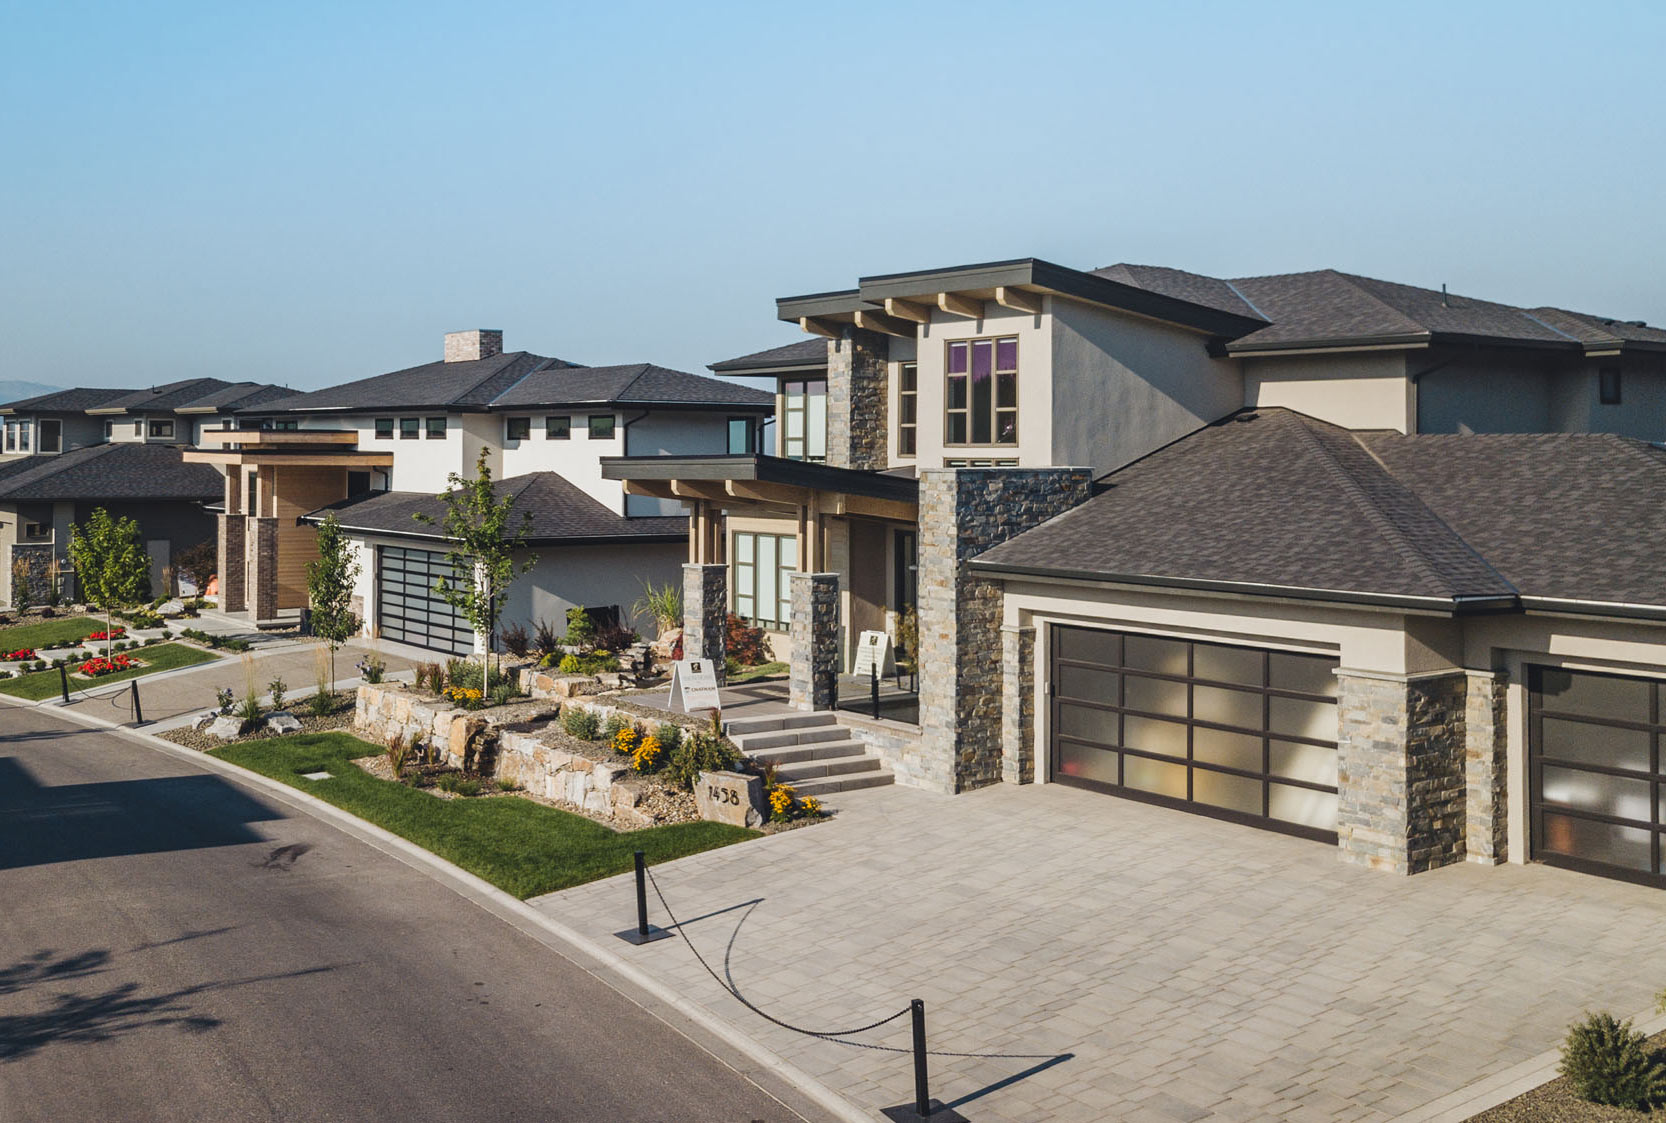 Wilden Parade of Showhomes - Rocky Point